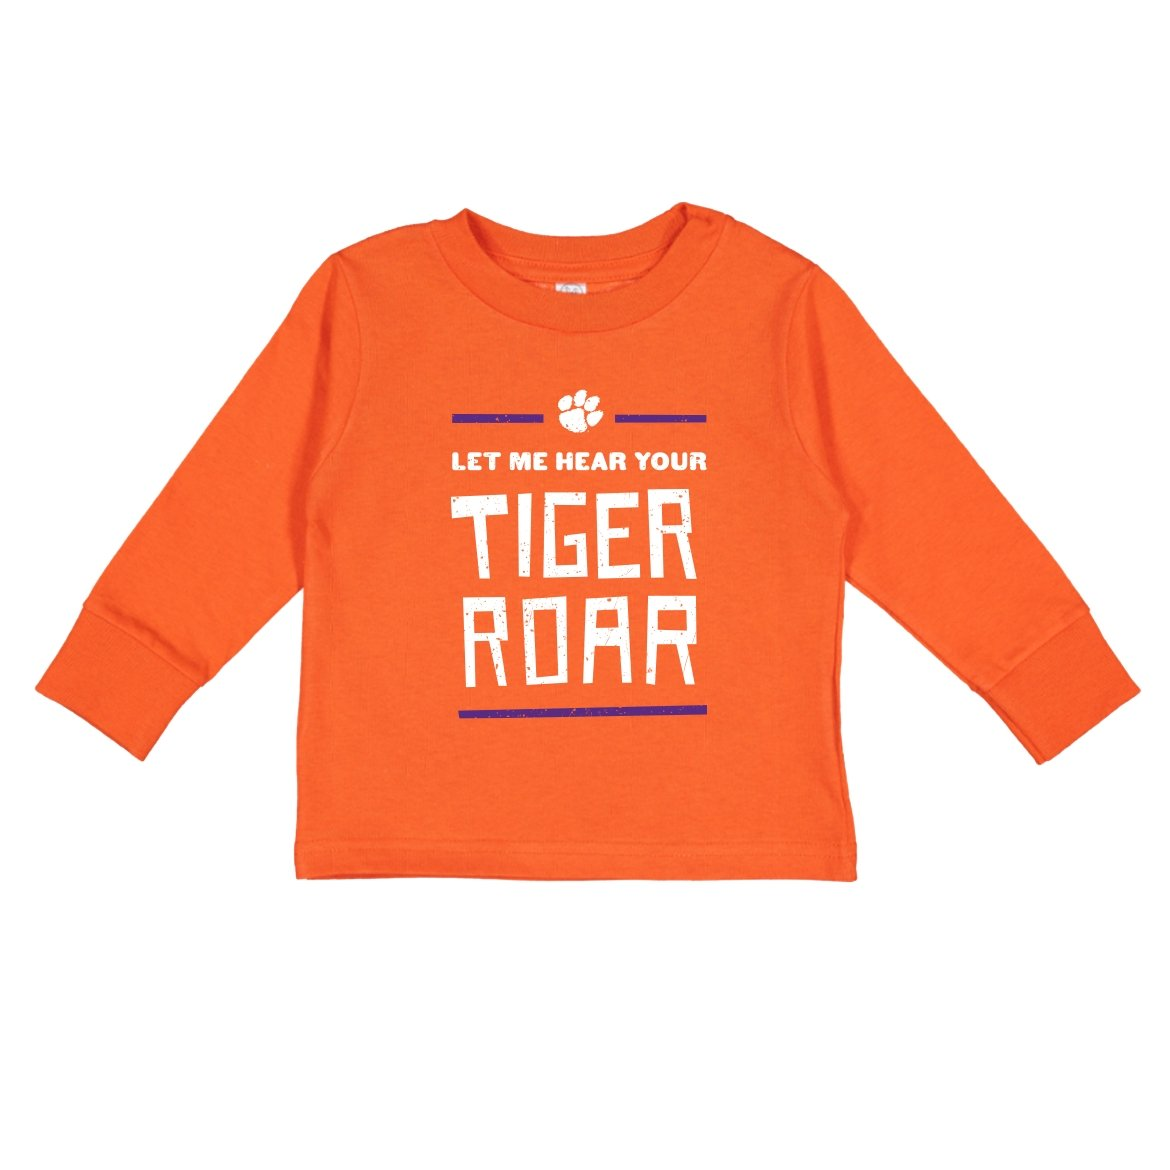 Toddler Long Sleeve Tee Let Me Hear Your Tiger Roar - Mr. Knickerbocker